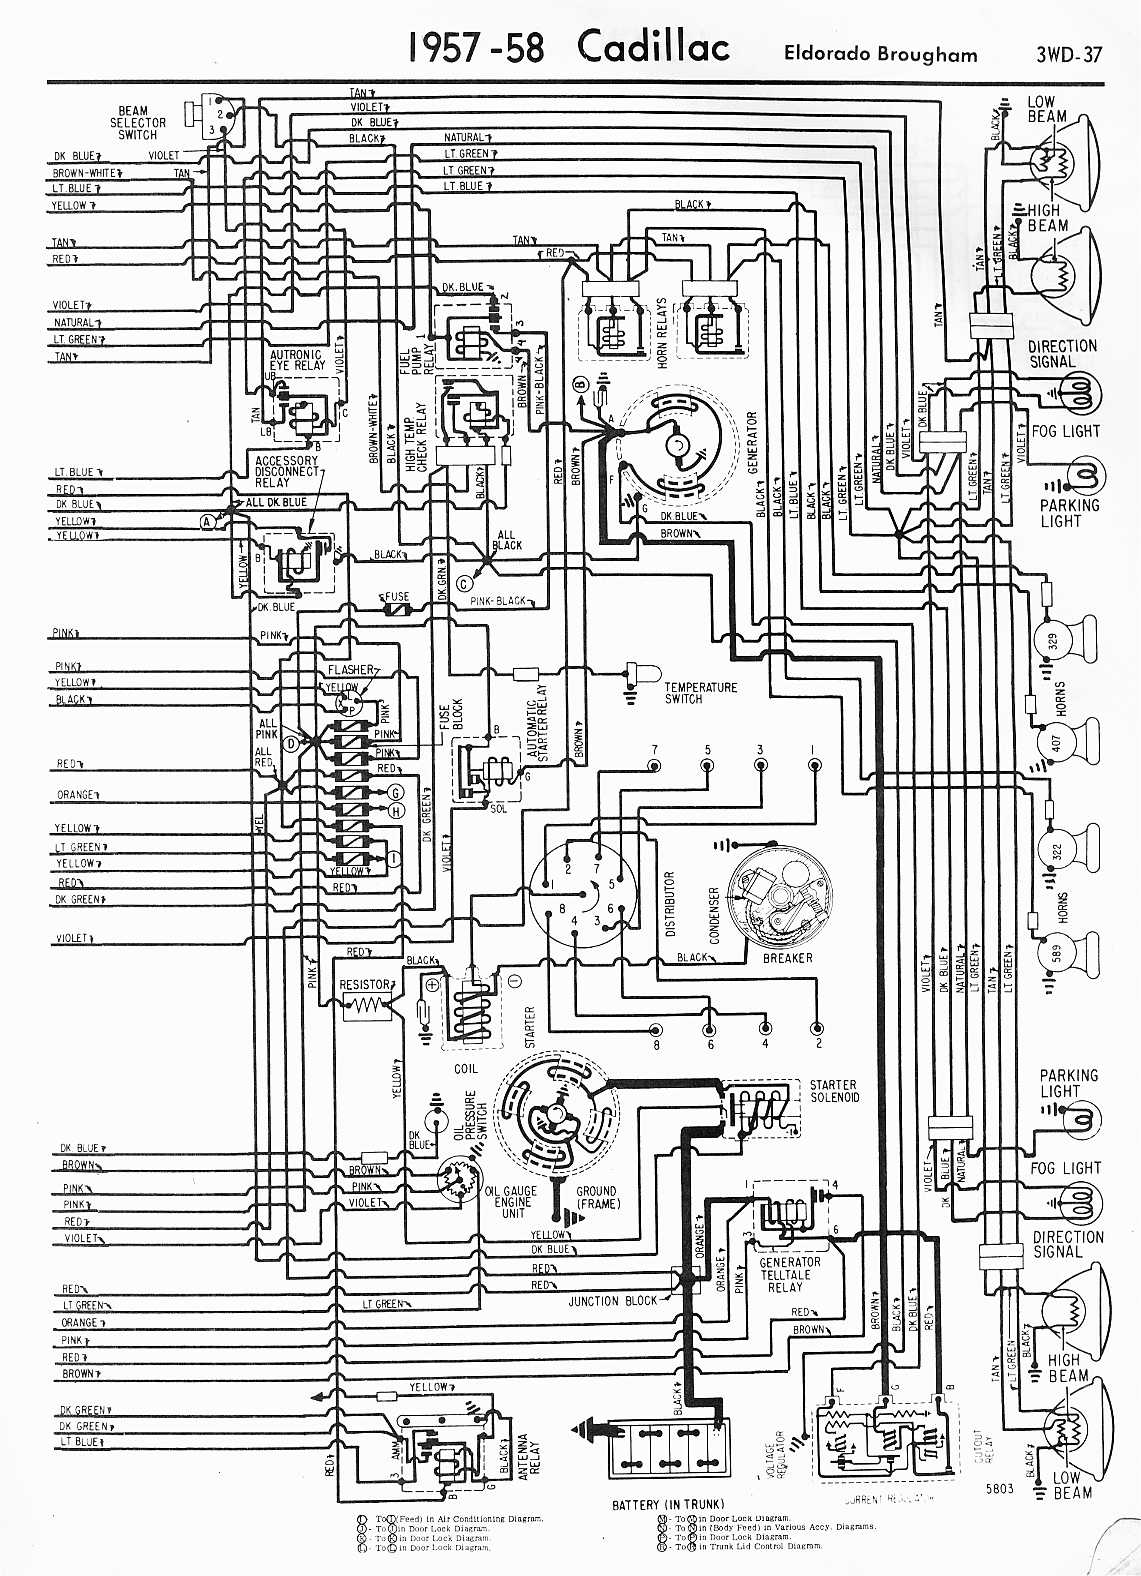 MWireCadi65_3WD 037 cadillac wiring diagrams 1957 1965 2002 cadillac deville radio wiring diagram at nearapp.co